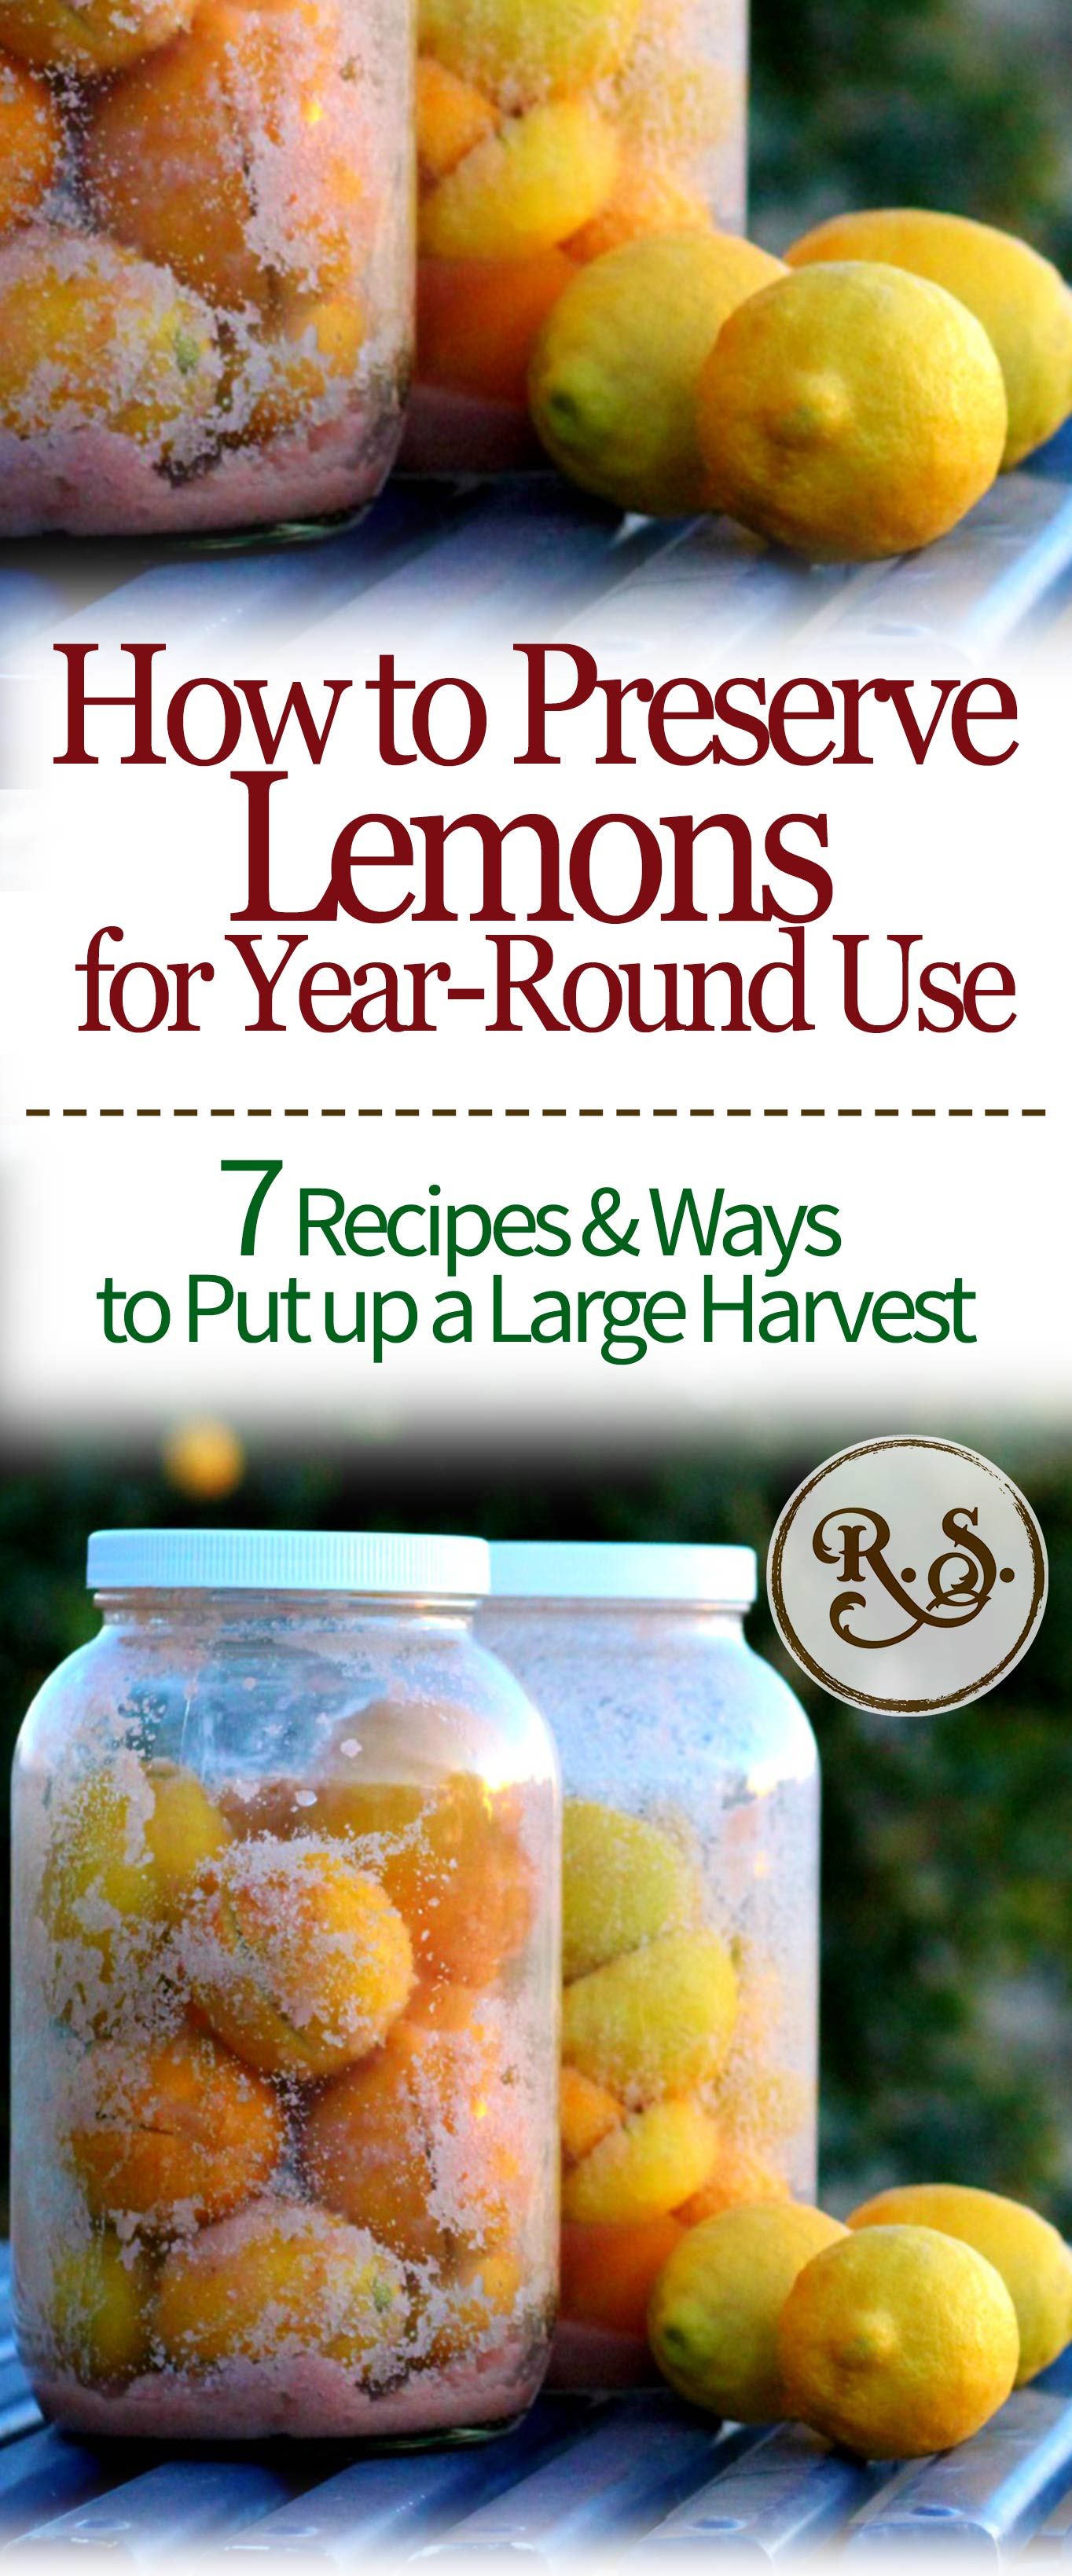 Learn how to preserve a large lemon harvest. You can ferment dehydrate, pack in salt, freeze, and more! Here are the 7 best ways and recipes I've found for putting up lemons for great uses later.